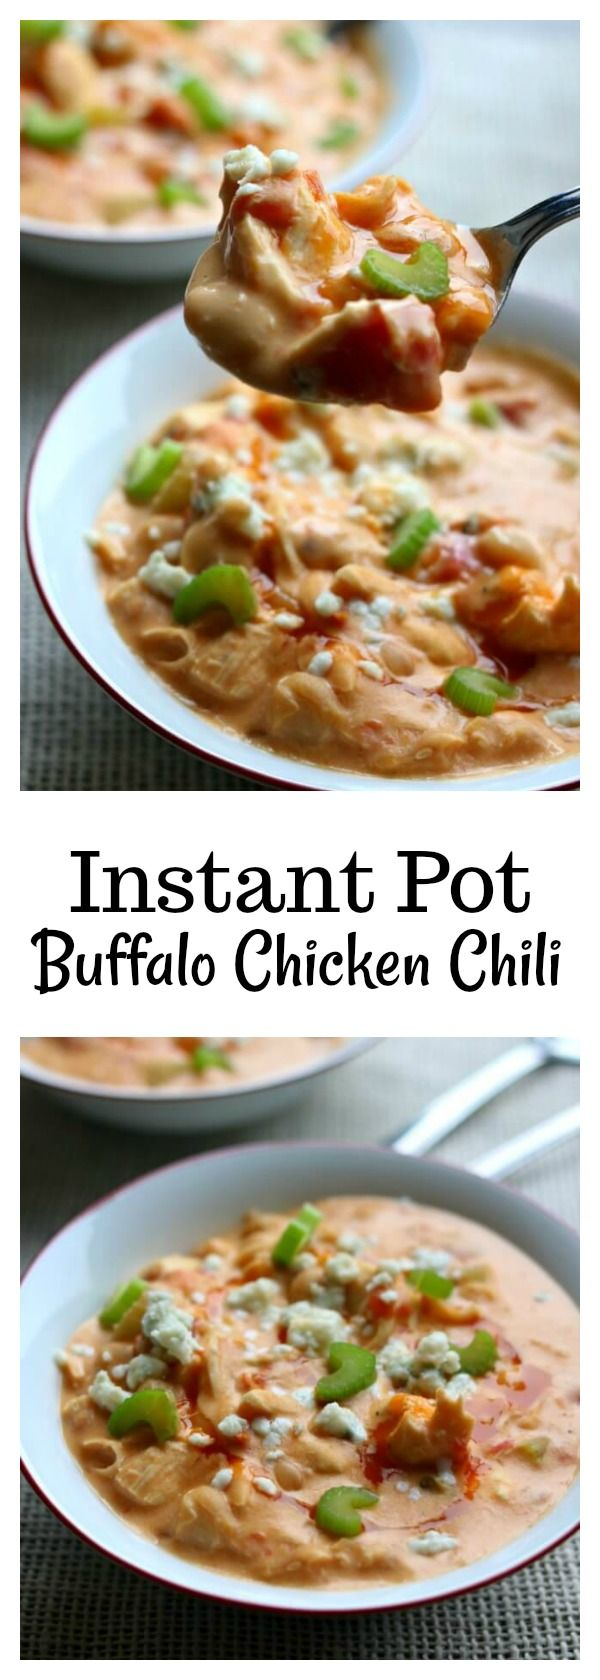 Instant Pot Buffalo Chicken Chili–a creamy white bean chicken chili that is flavored with buffalo sauce and fire roasted tomatoes. It's basically the soup version of buffalo chicken dip.